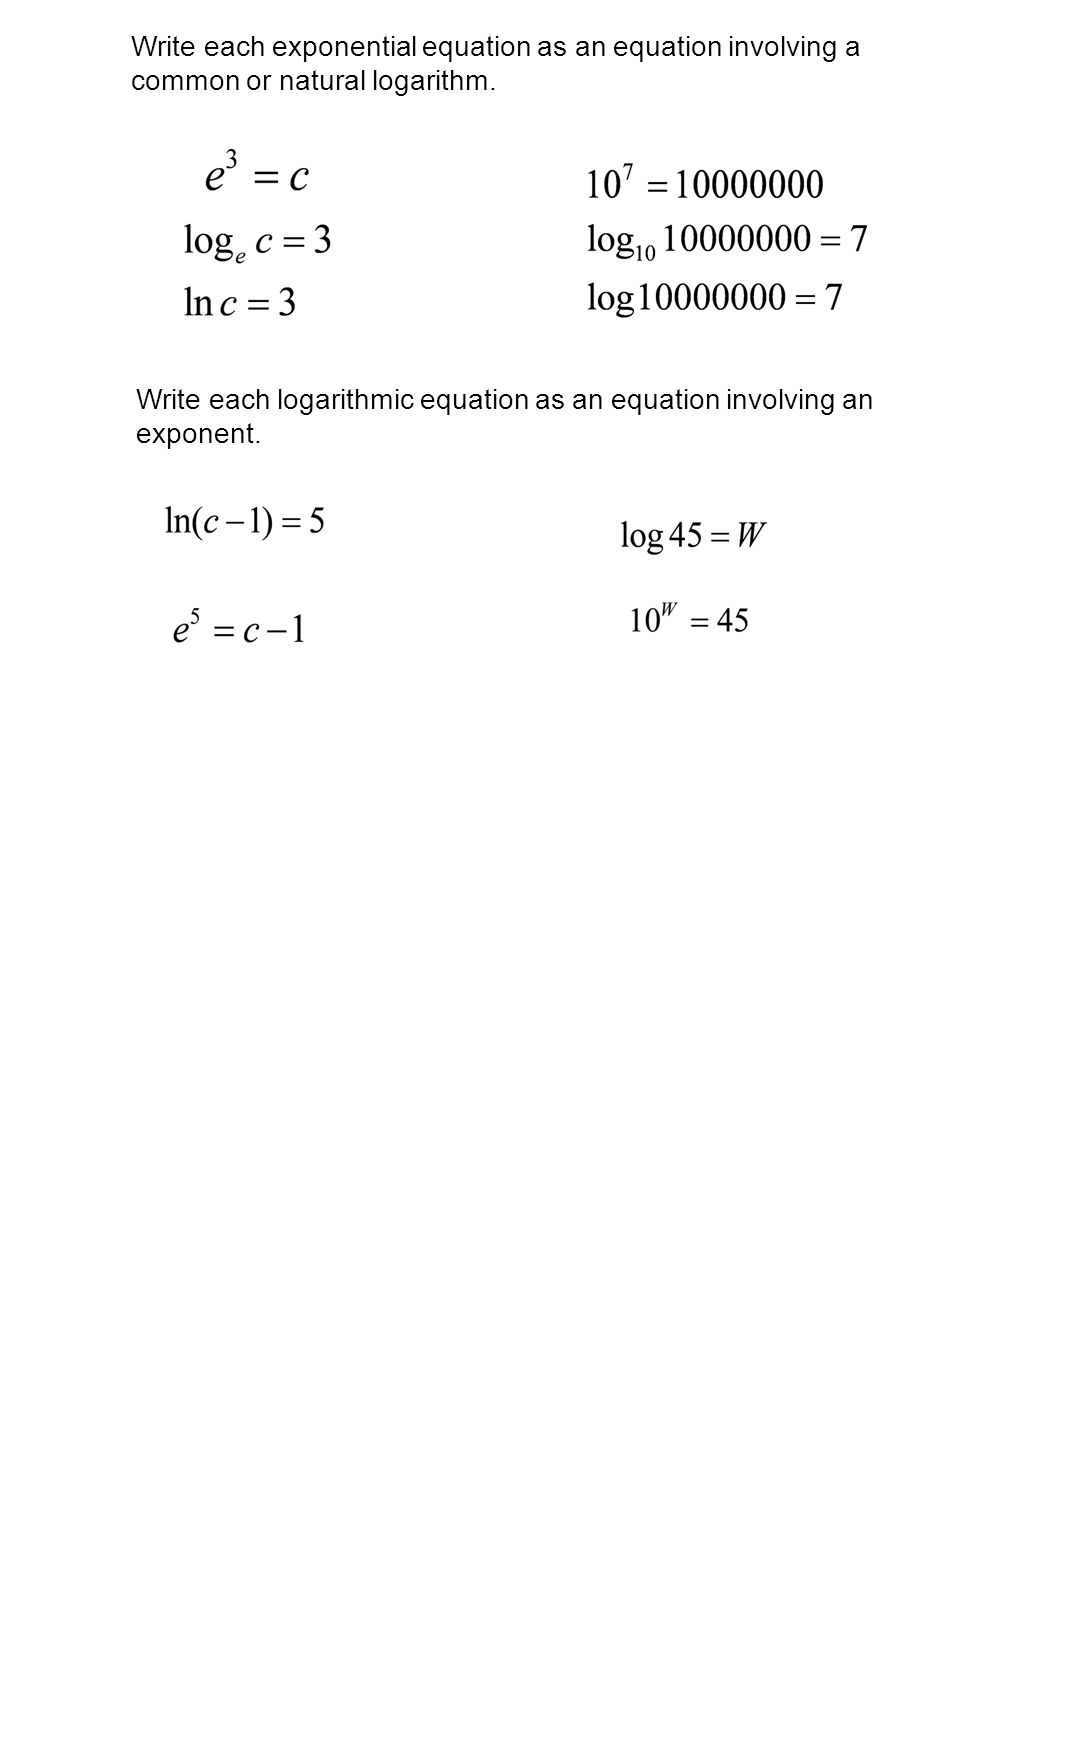 worksheet Solving Exponential And Logarithmic Equations Worksheet exponential and logarithmic functions equations ppt download write each equation as an involving a common or natural logarithm